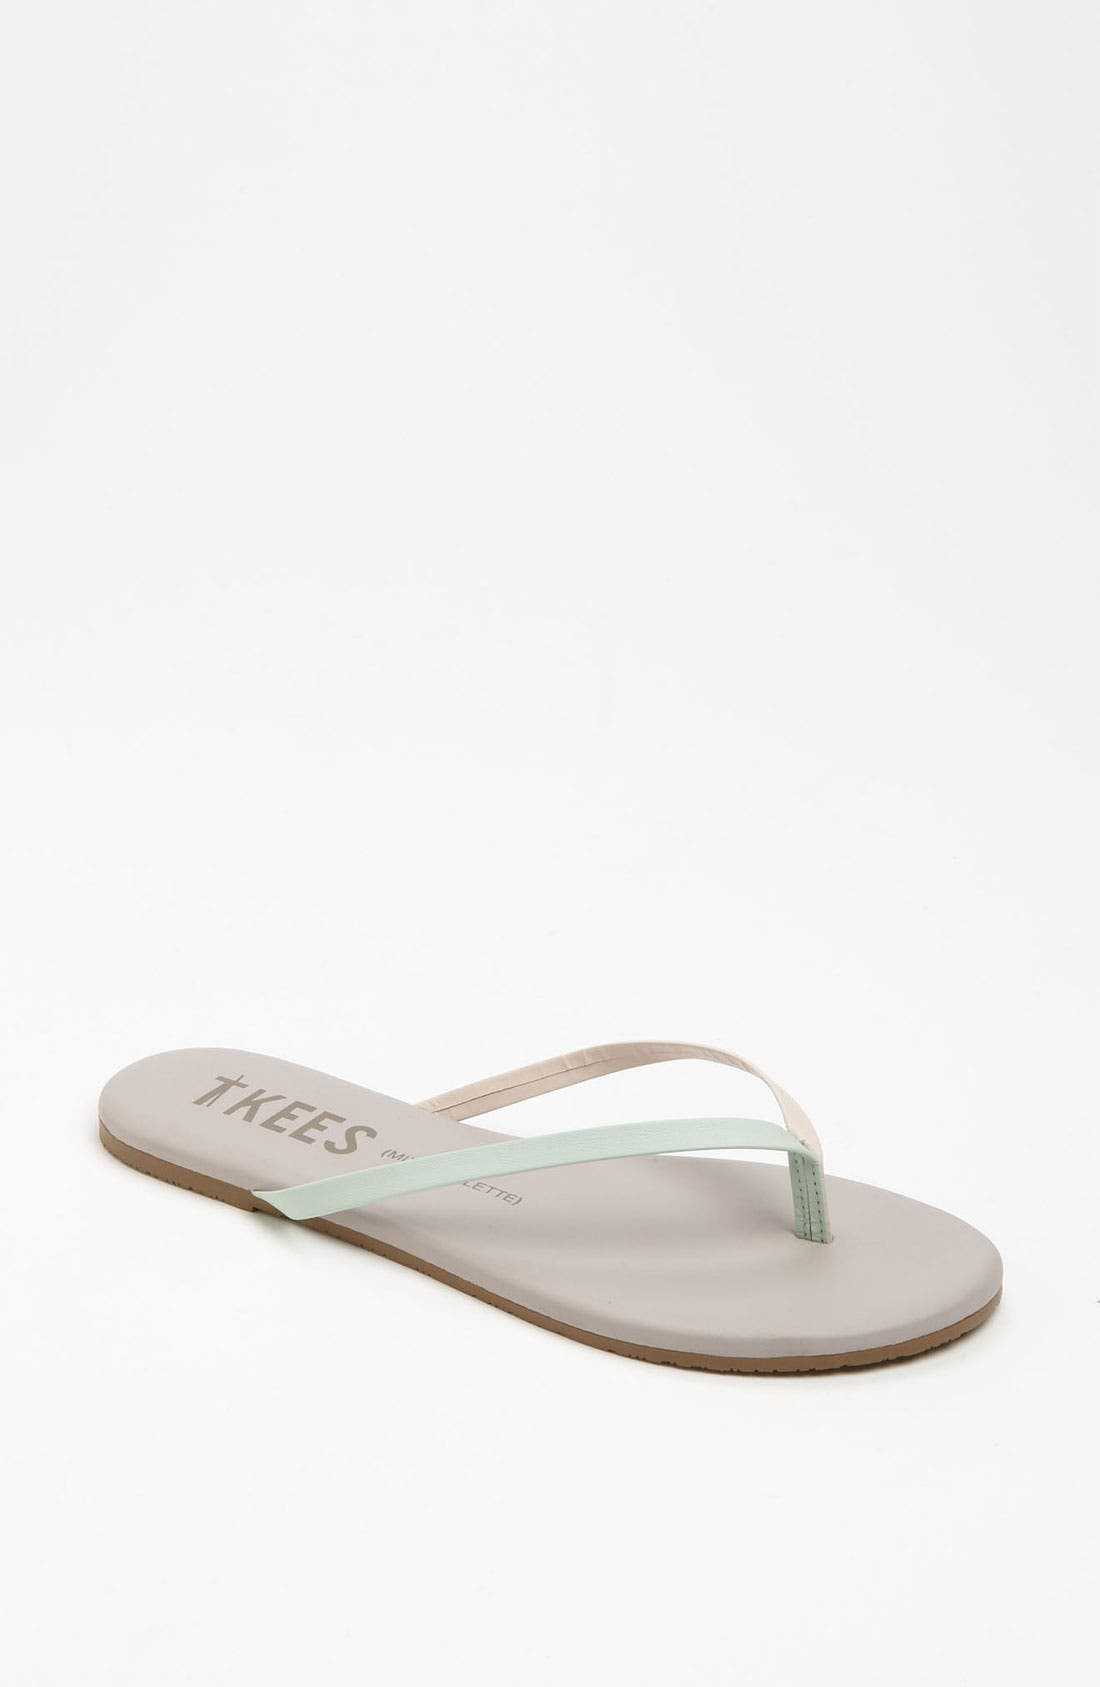 Alternate Image 1 Selected - TKEES Flip Flop